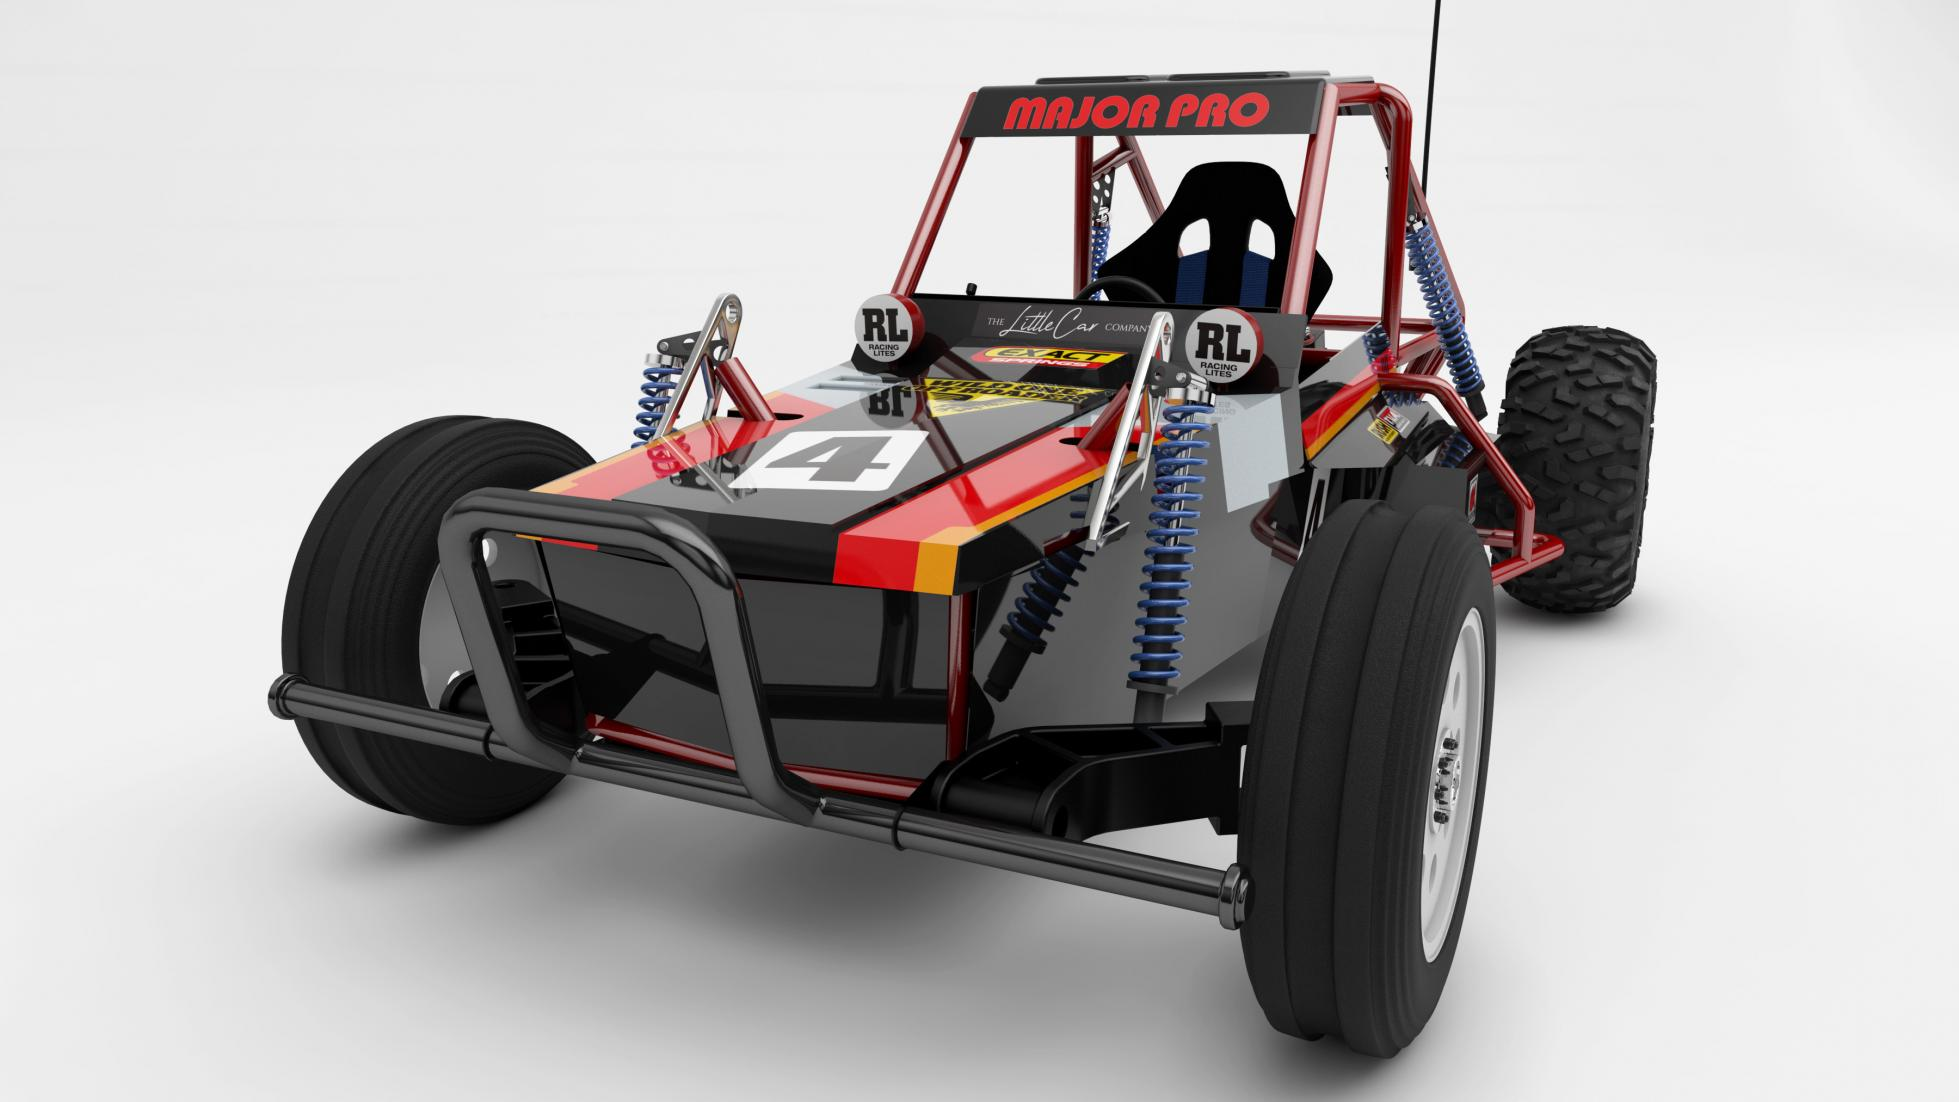 The Little Car Company x Tamiya Wild One MAX Front View